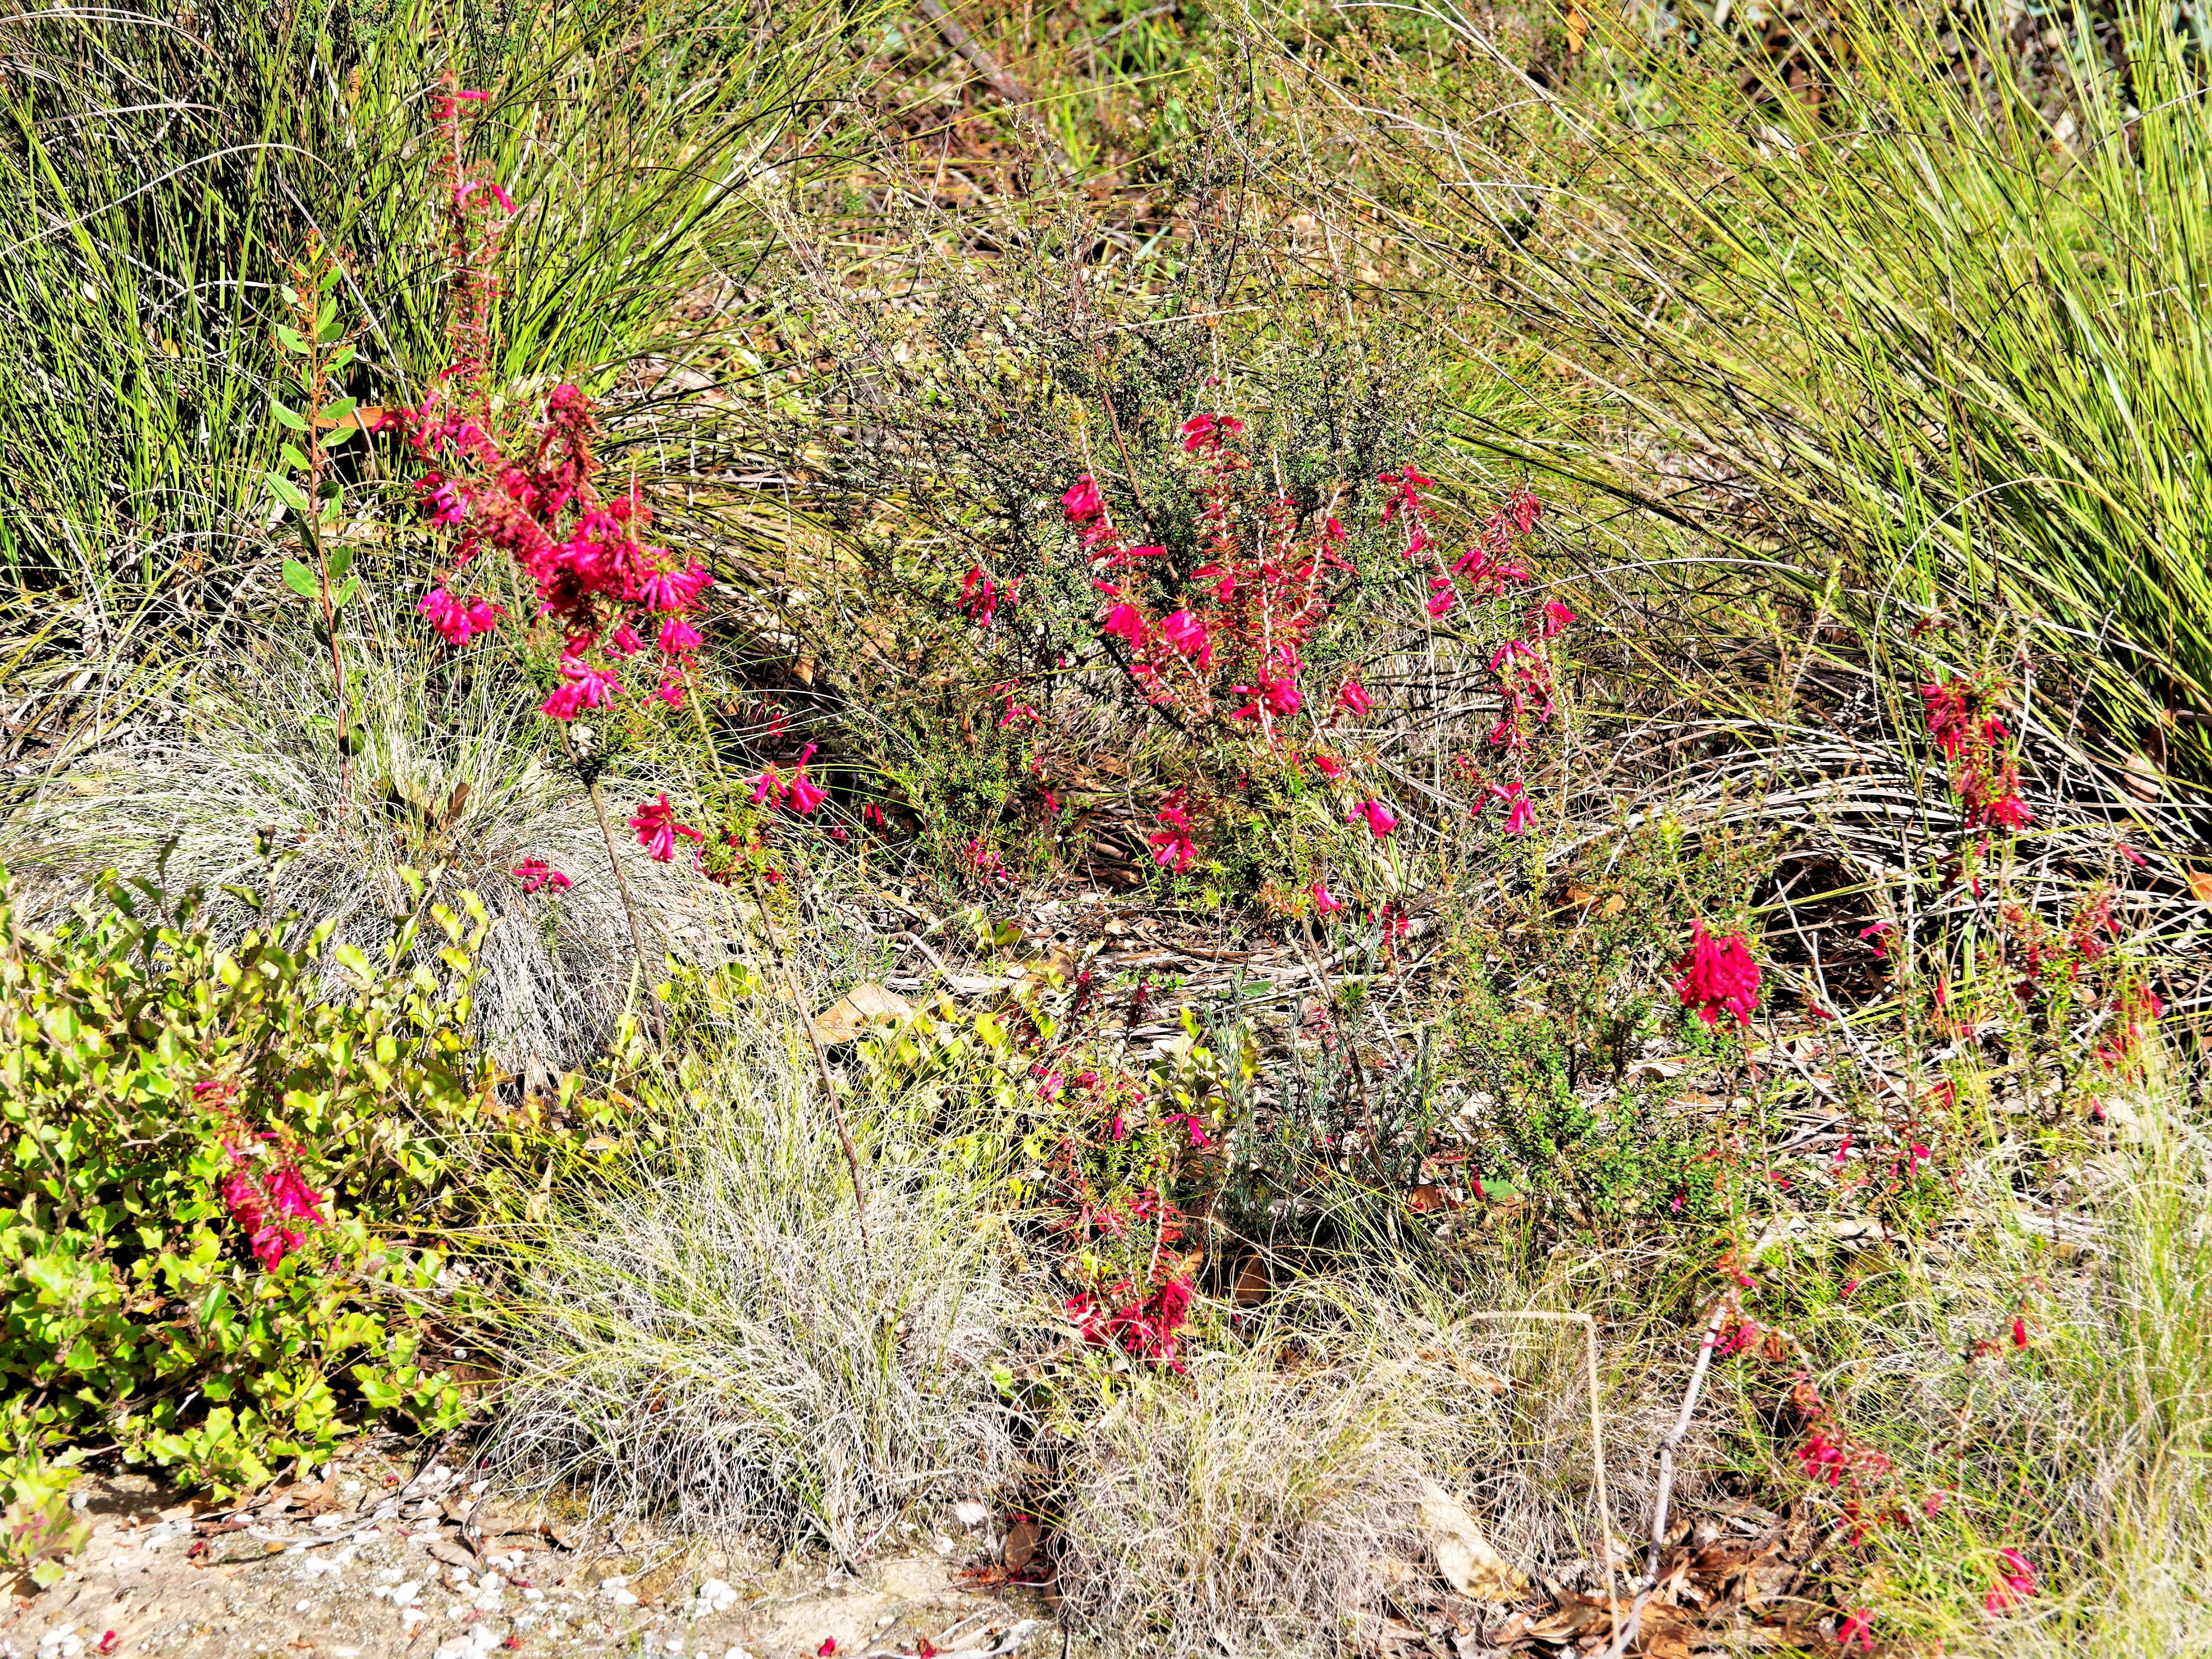 This should be Epacris-impressa-4.jpeg.  Is it missing?